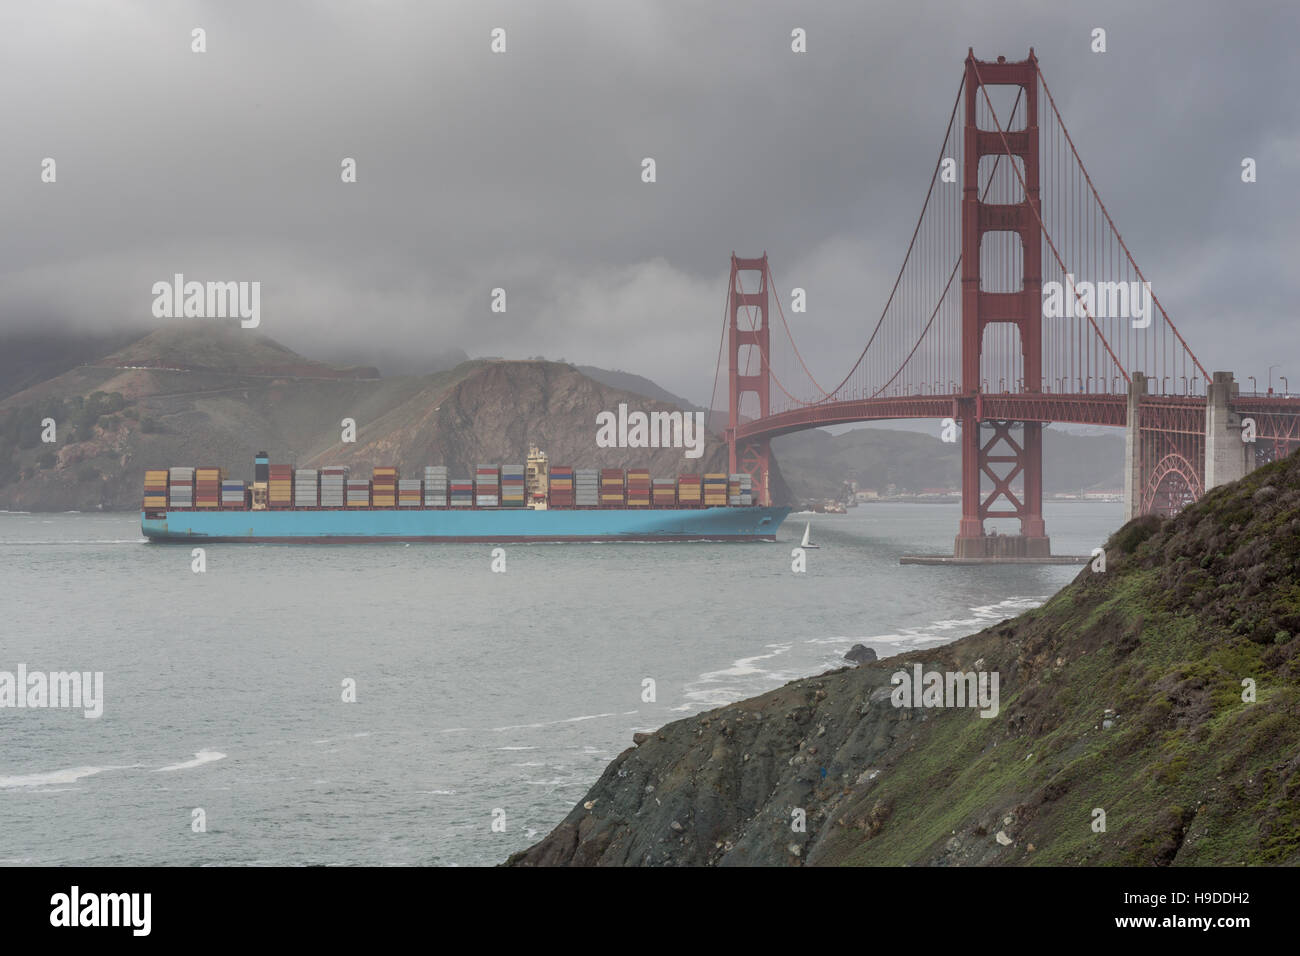 Freight ship crossing the Golden Gate Bridge during storm. - Stock Image